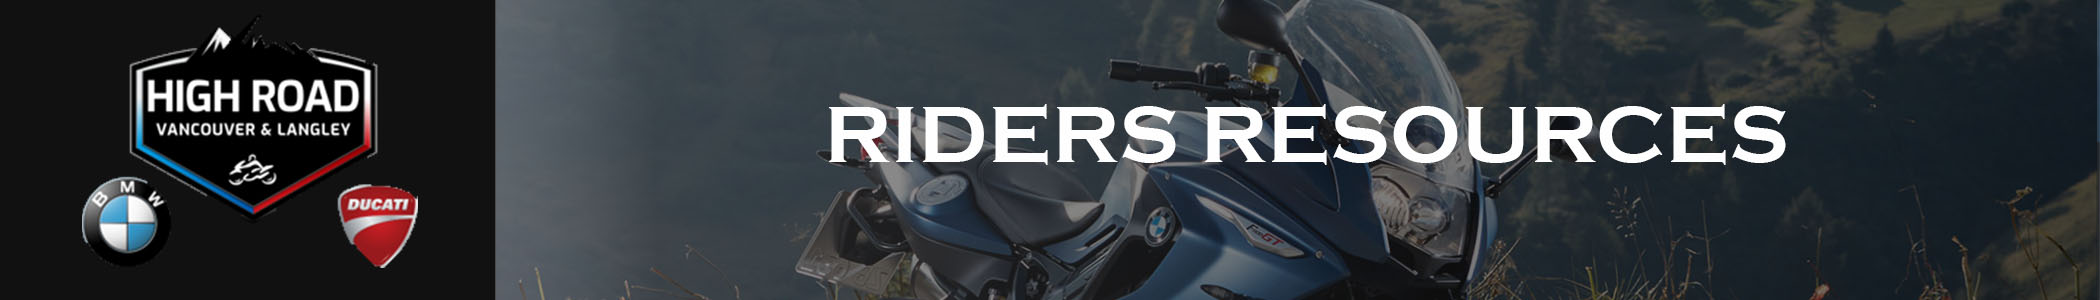 riders resources